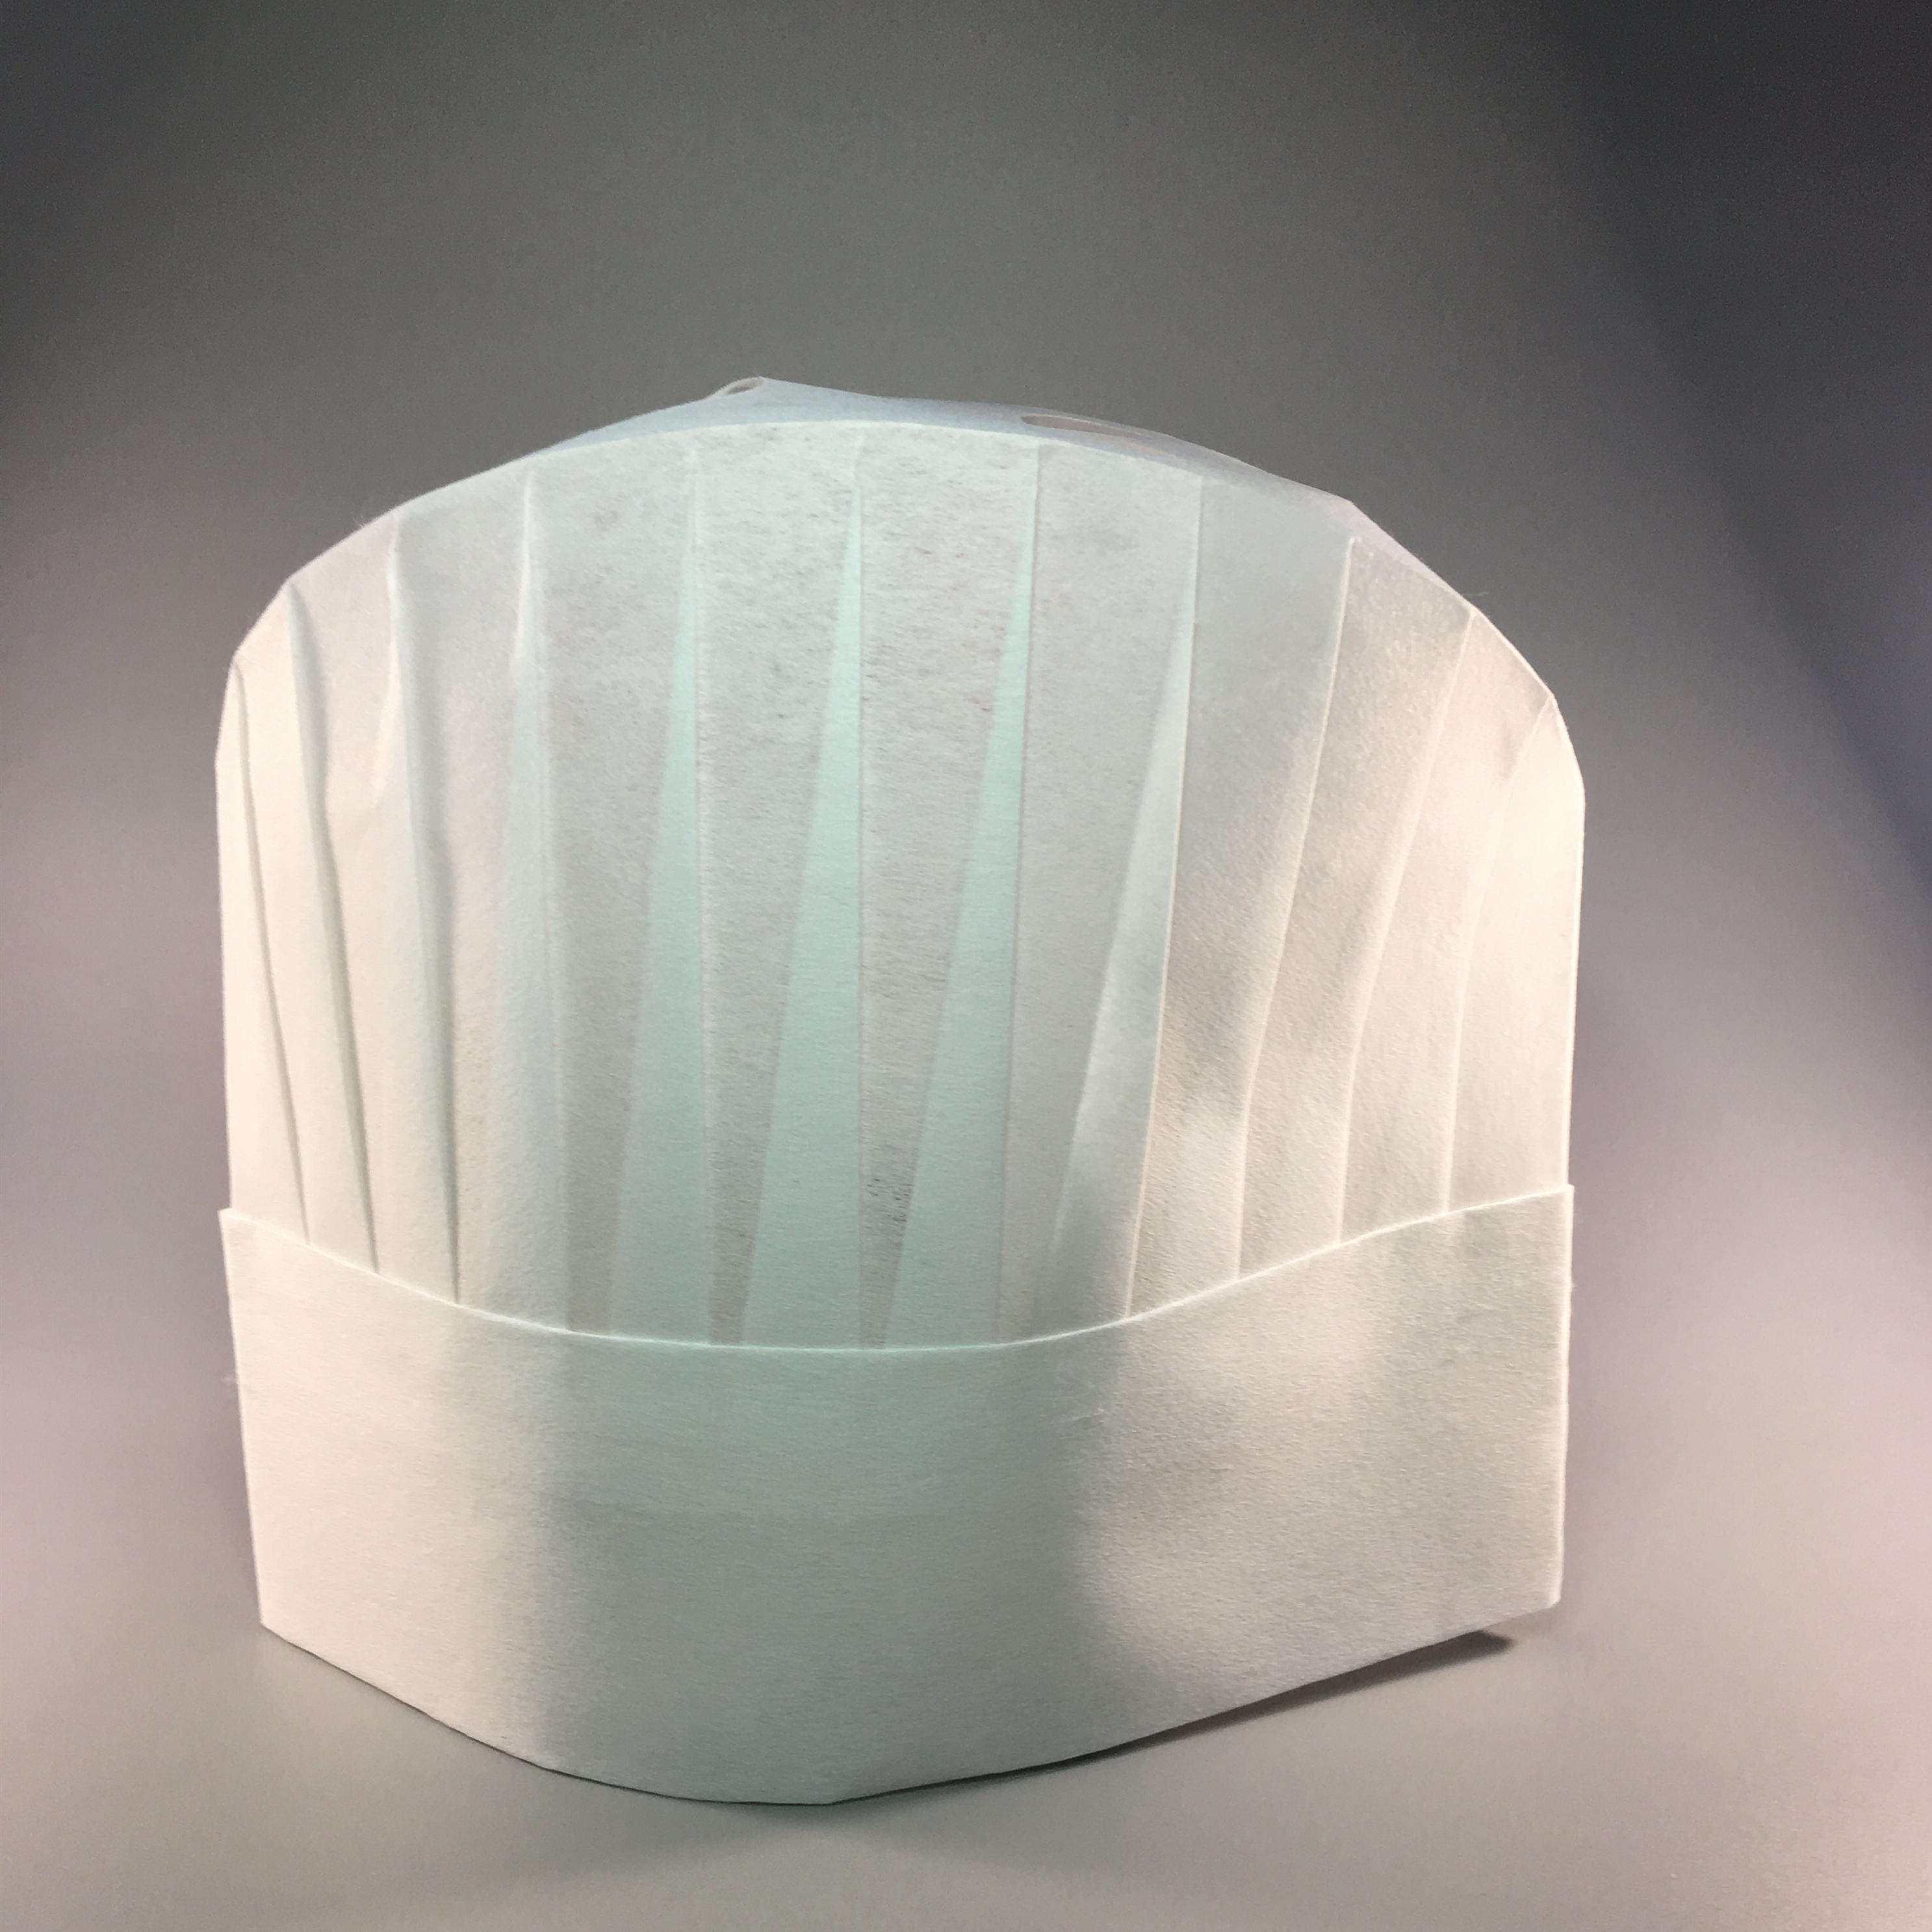 "Round top 9"" height white paper chef hat with kitchen"